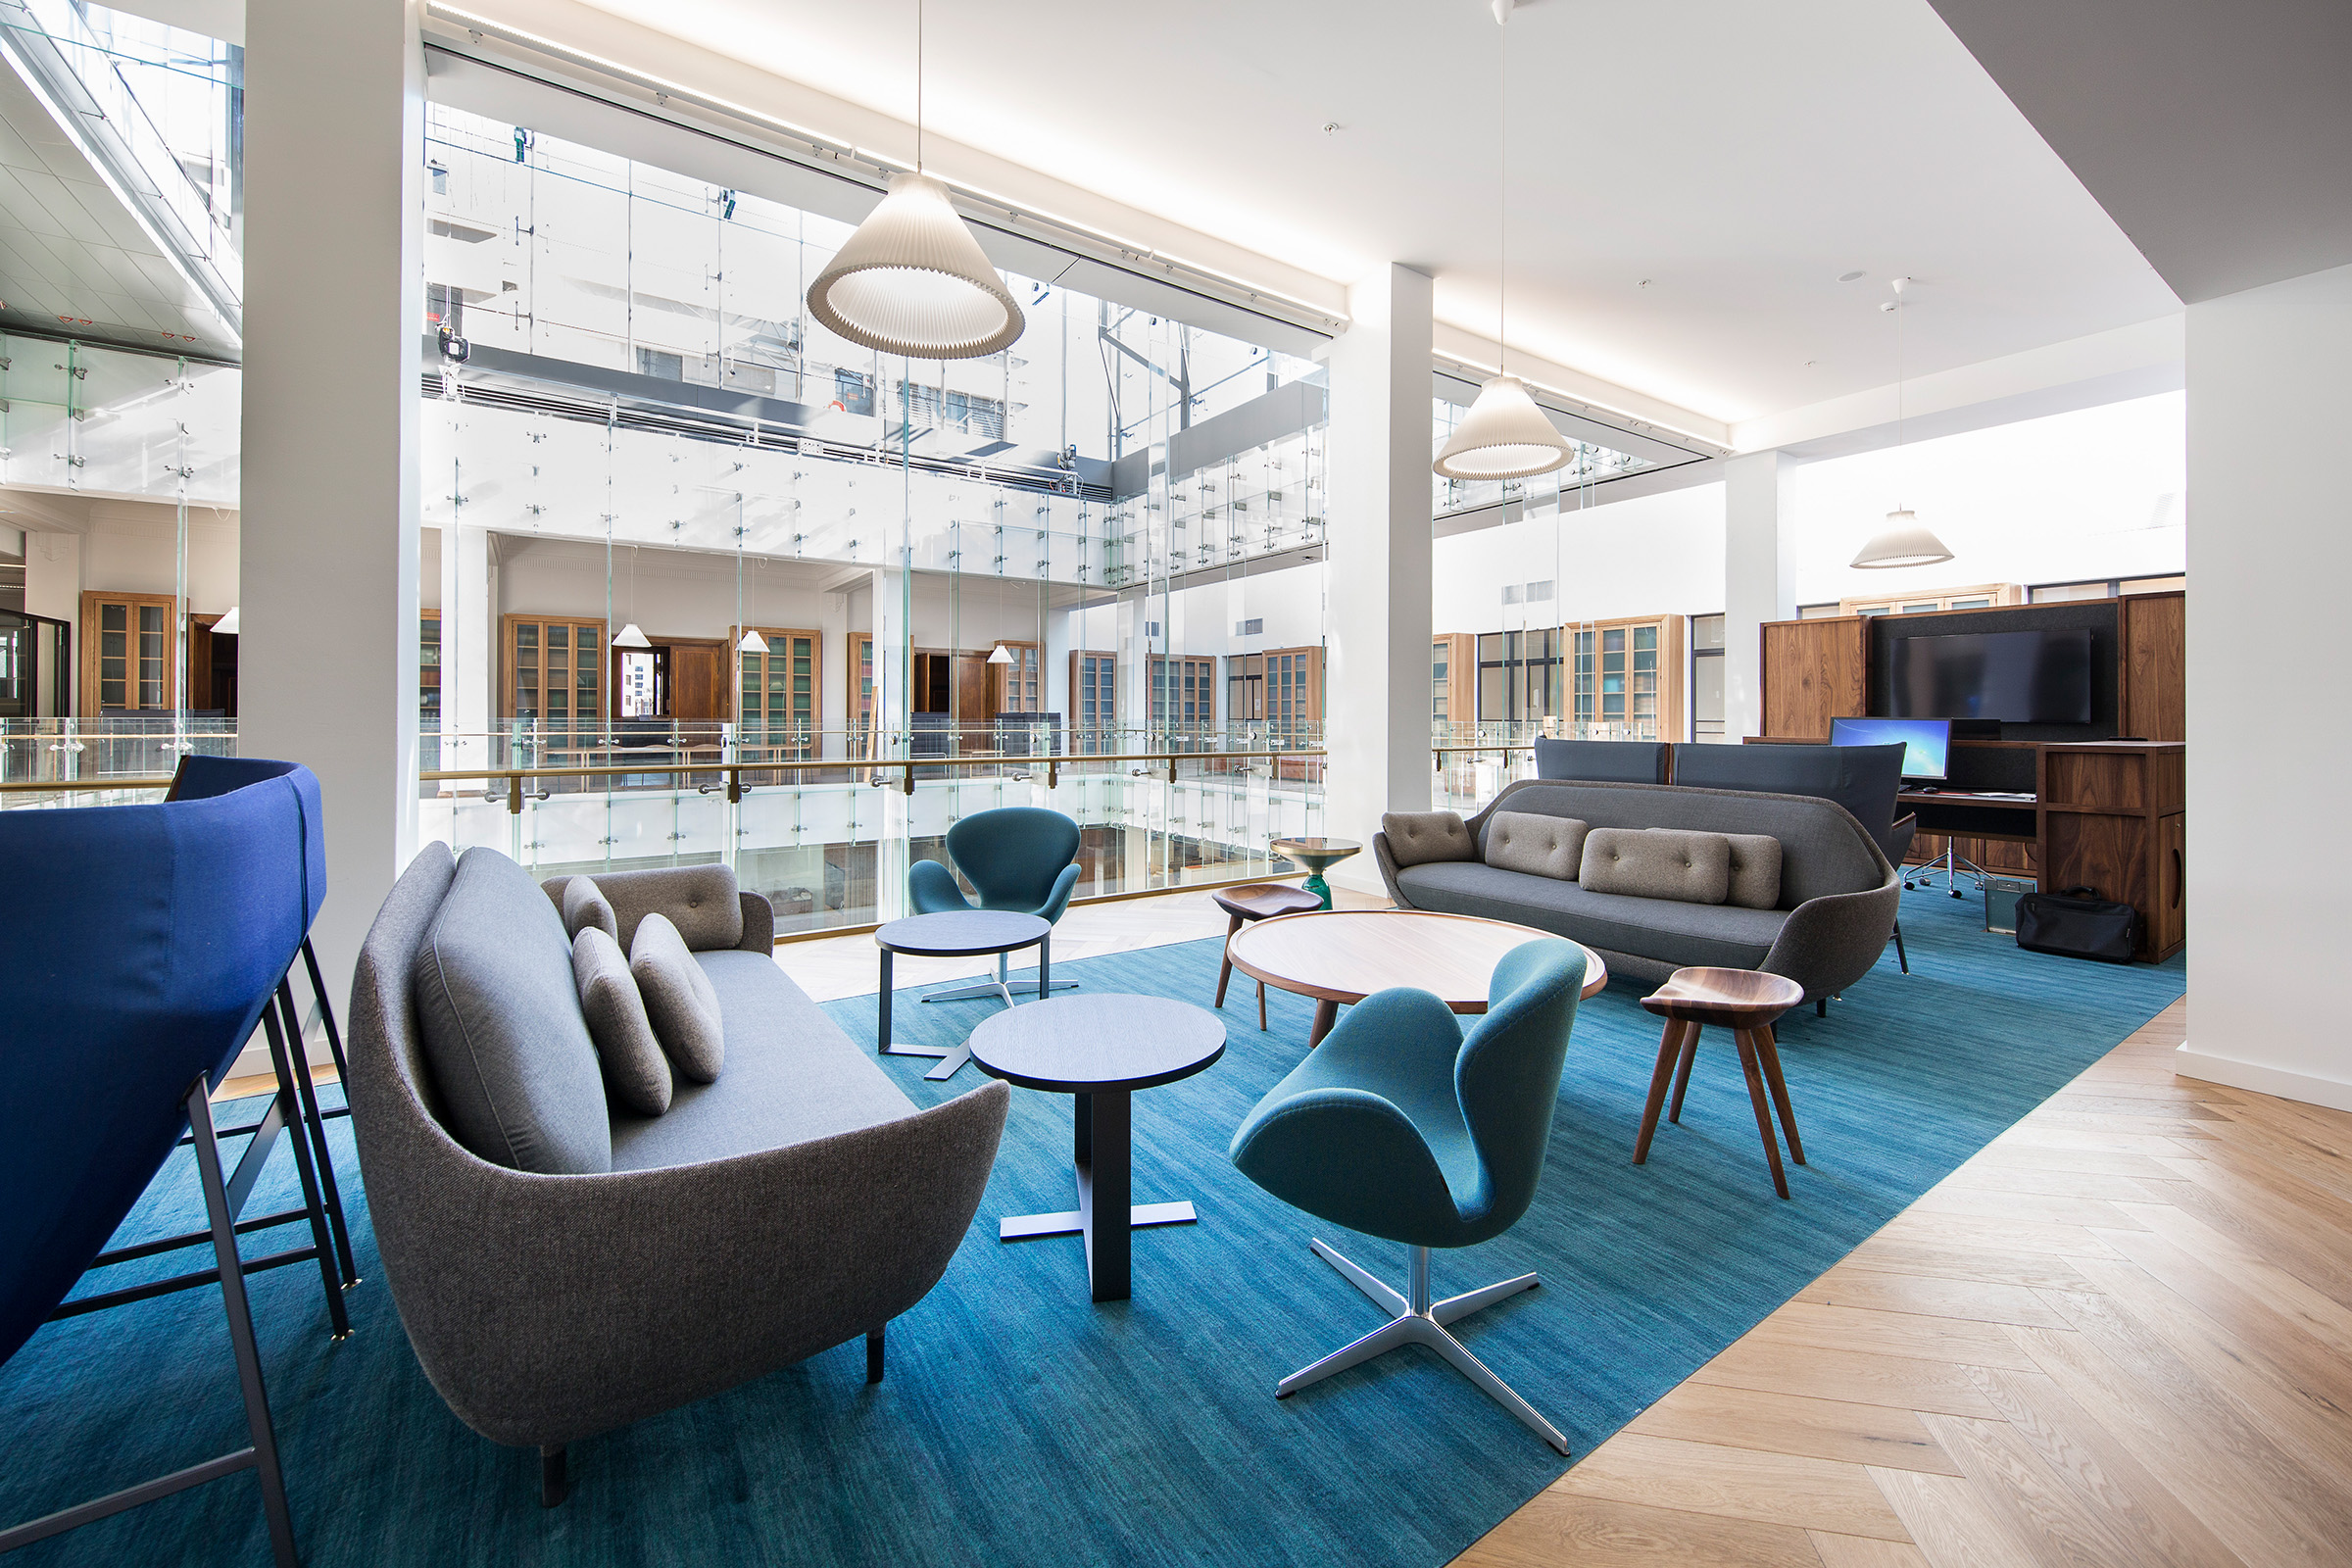 Interior architectural photography common breakout area seating